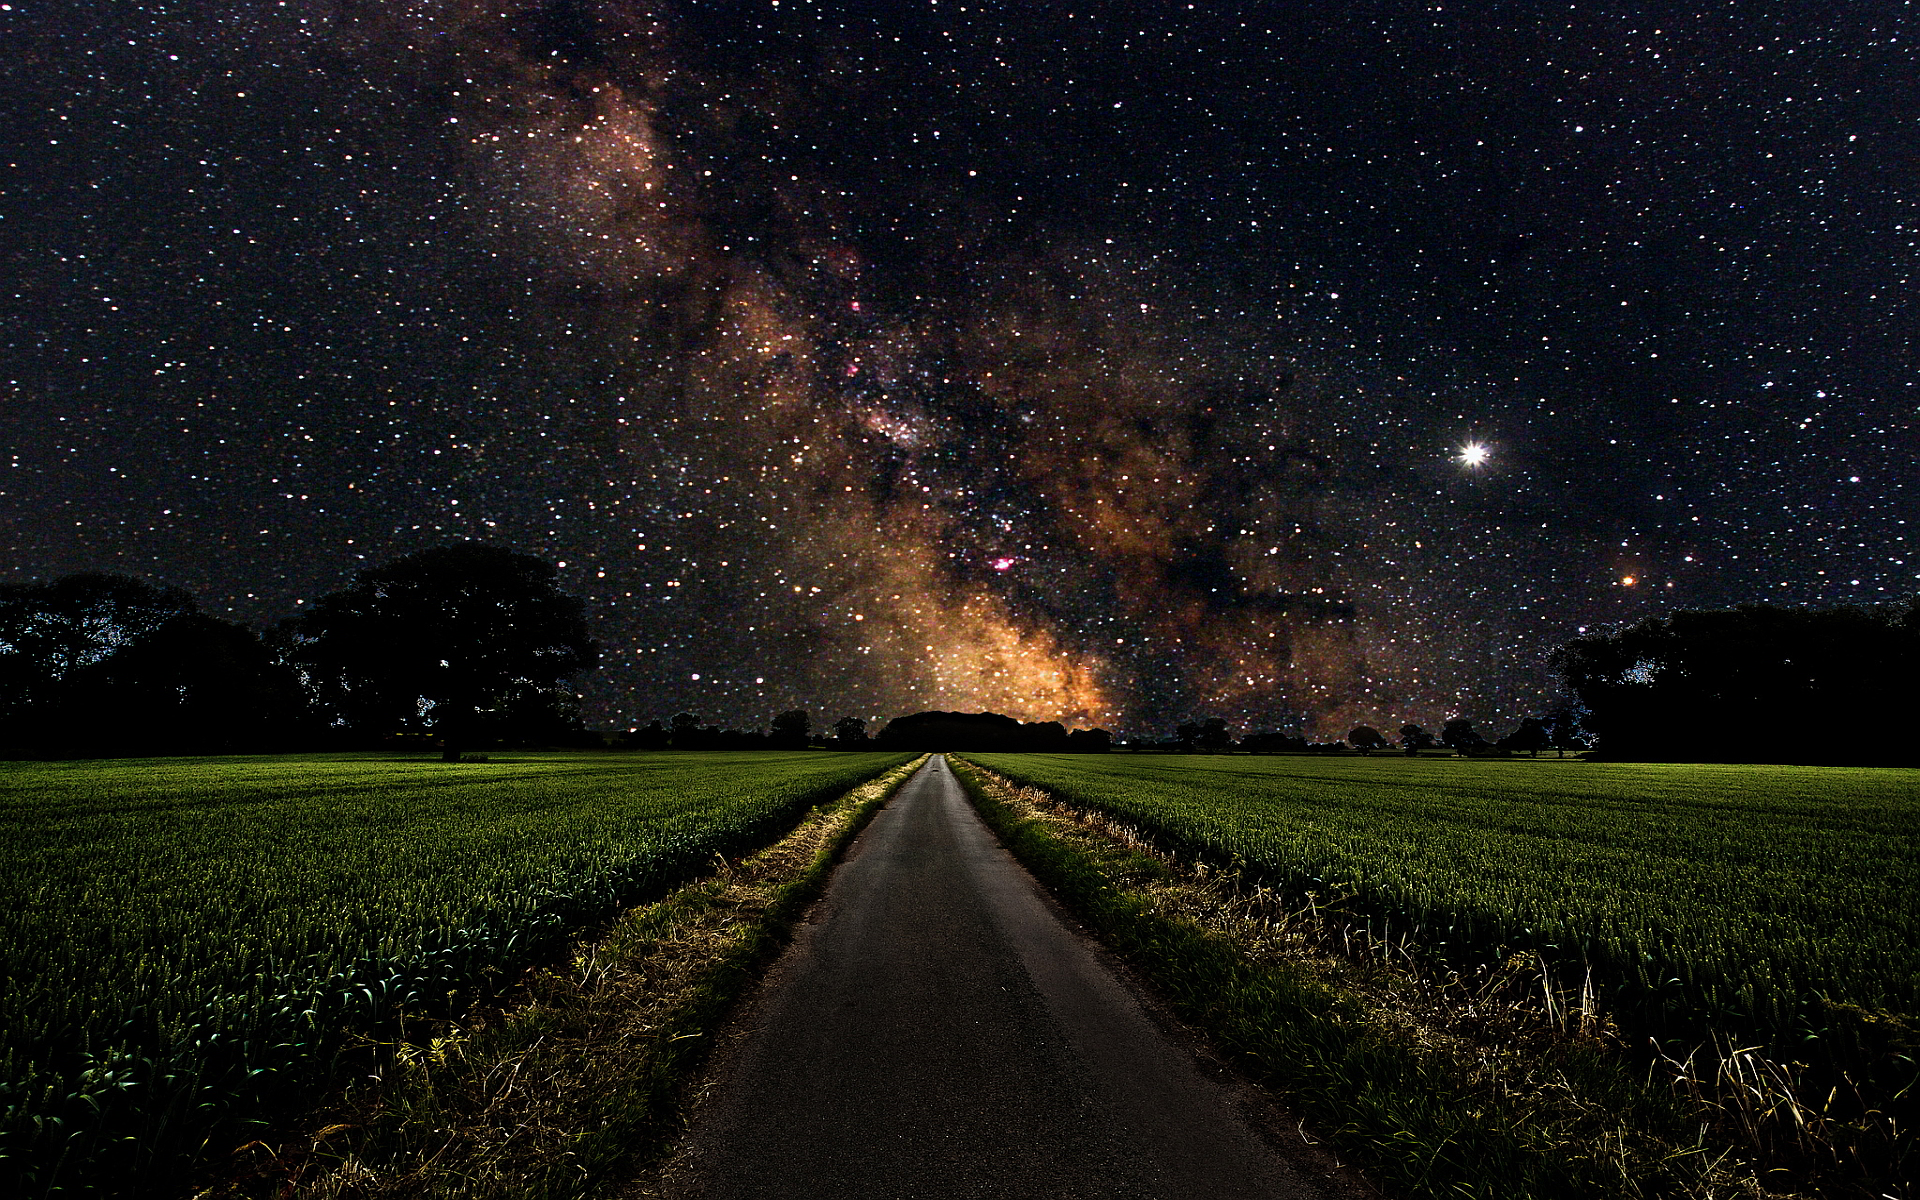 8877890-space-stars-road